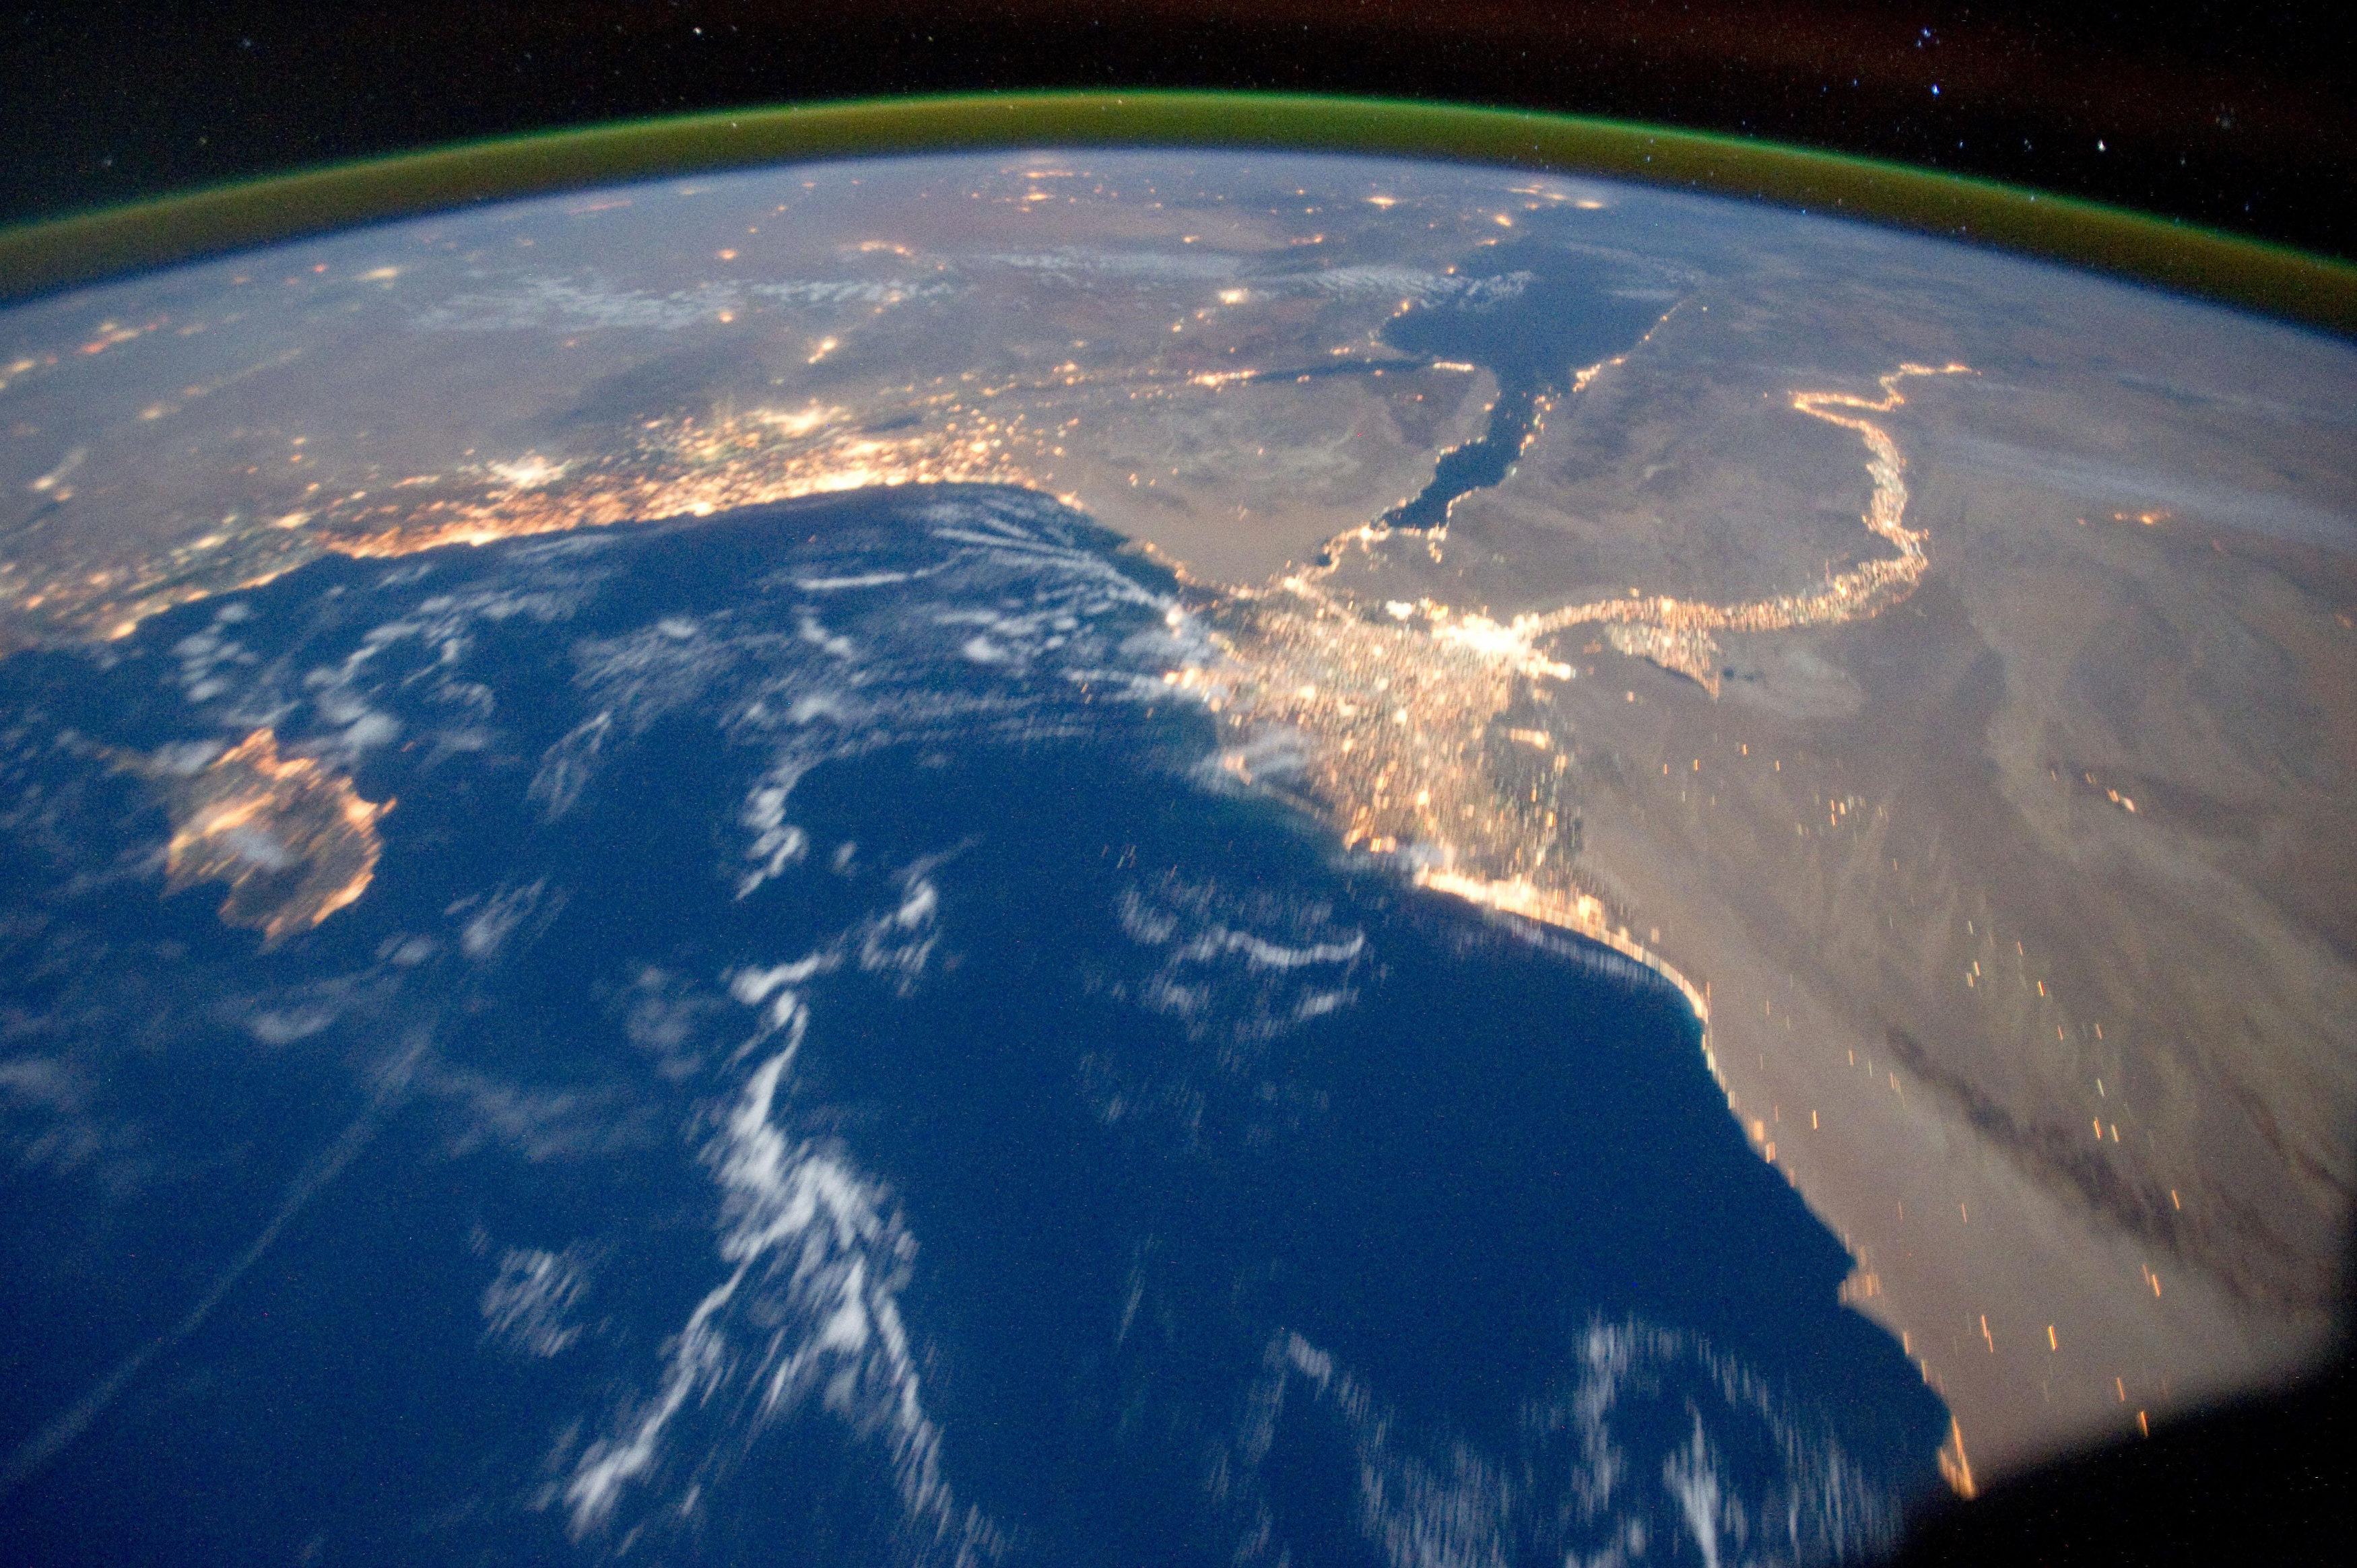 Earth's airglow is seen with an oblique view of the Mediterranean Sea area, including the Nile River with its delta and the Sinai Peninsula, in this October 15, 2011 NASA handout photograph taken by a crew member of Expedition 29 aboard the International Space Station. Some areas of the photo like the river and river delta appear as the brightest areas because of either man-made lighting (mostly incandescent) or man-made lighting reflected off nearby surfaces. The other areas appear to be illuminated naturally by moonlight, starlight, or back-scattered light from the atmosphere, according to NASA. Picture taken October 15, 2011. REUTERS/NASA/Handout